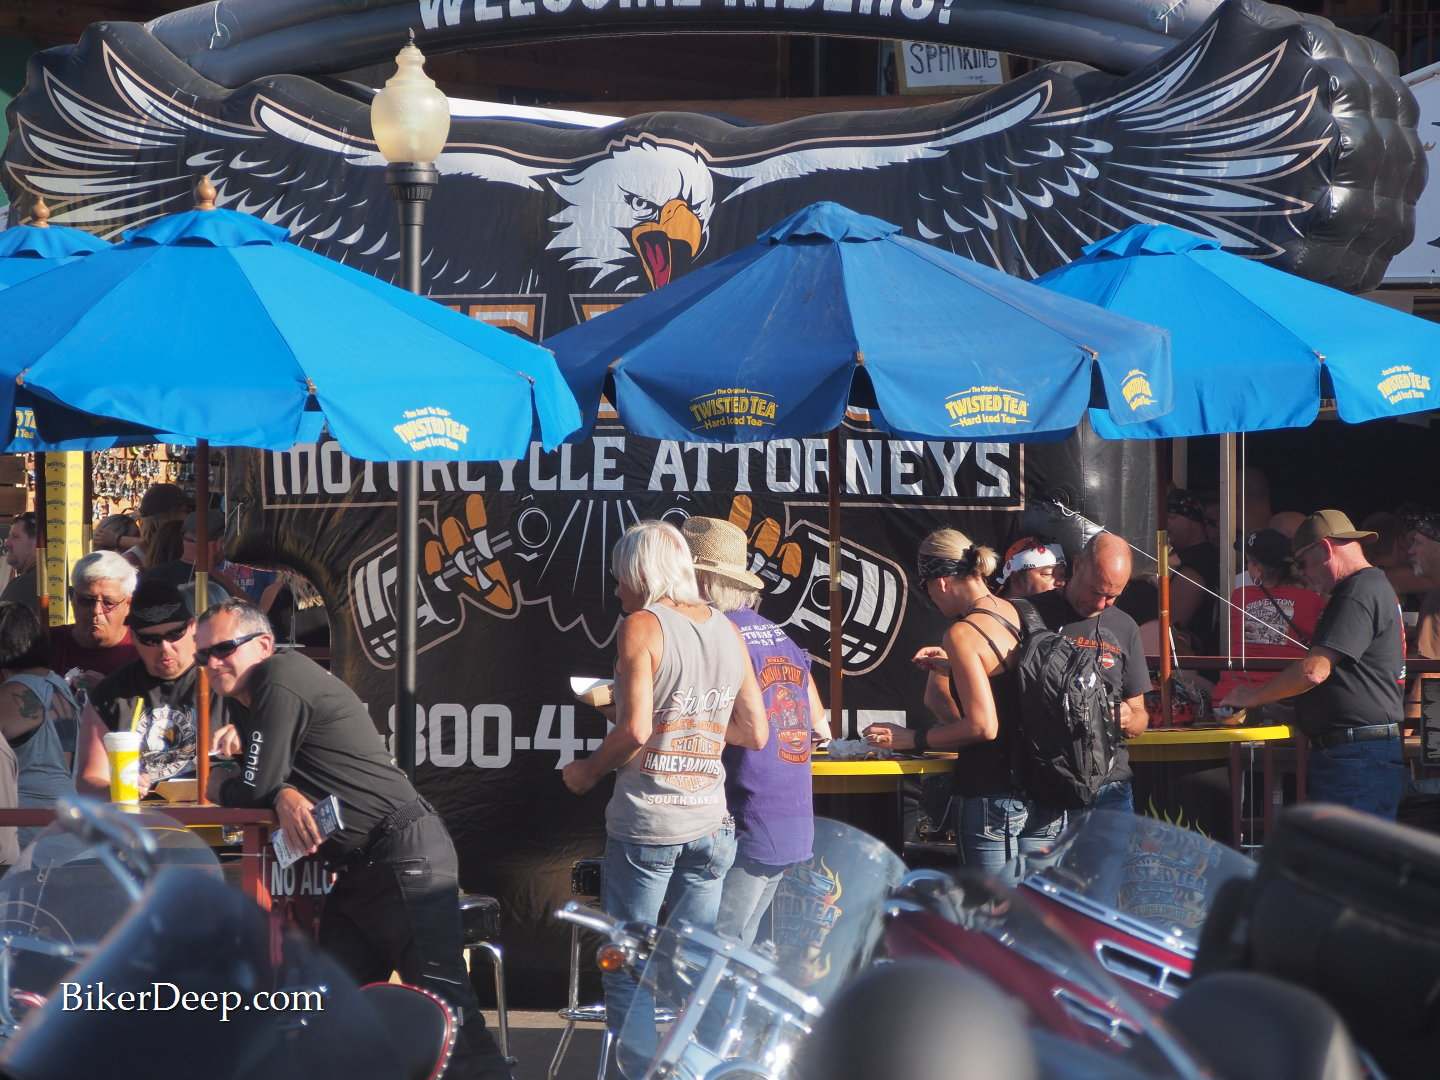 Motorcycle Attorneys